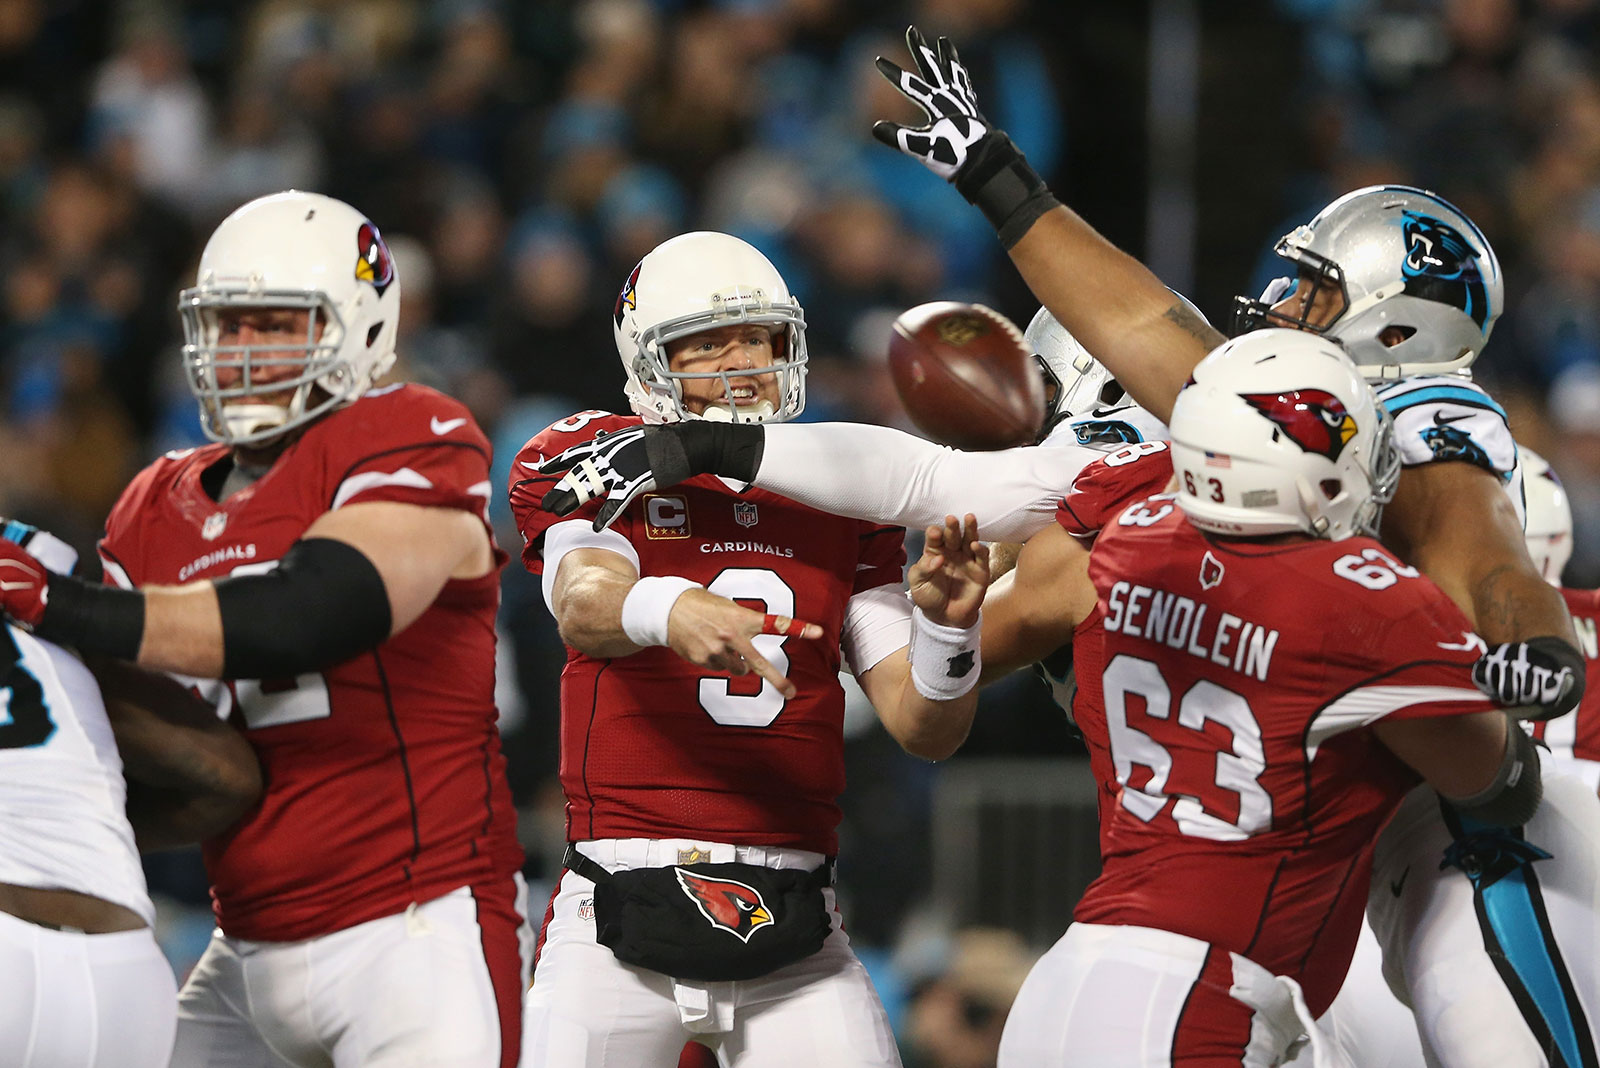 Big change in offensive line in front of Cardinals' Palmer